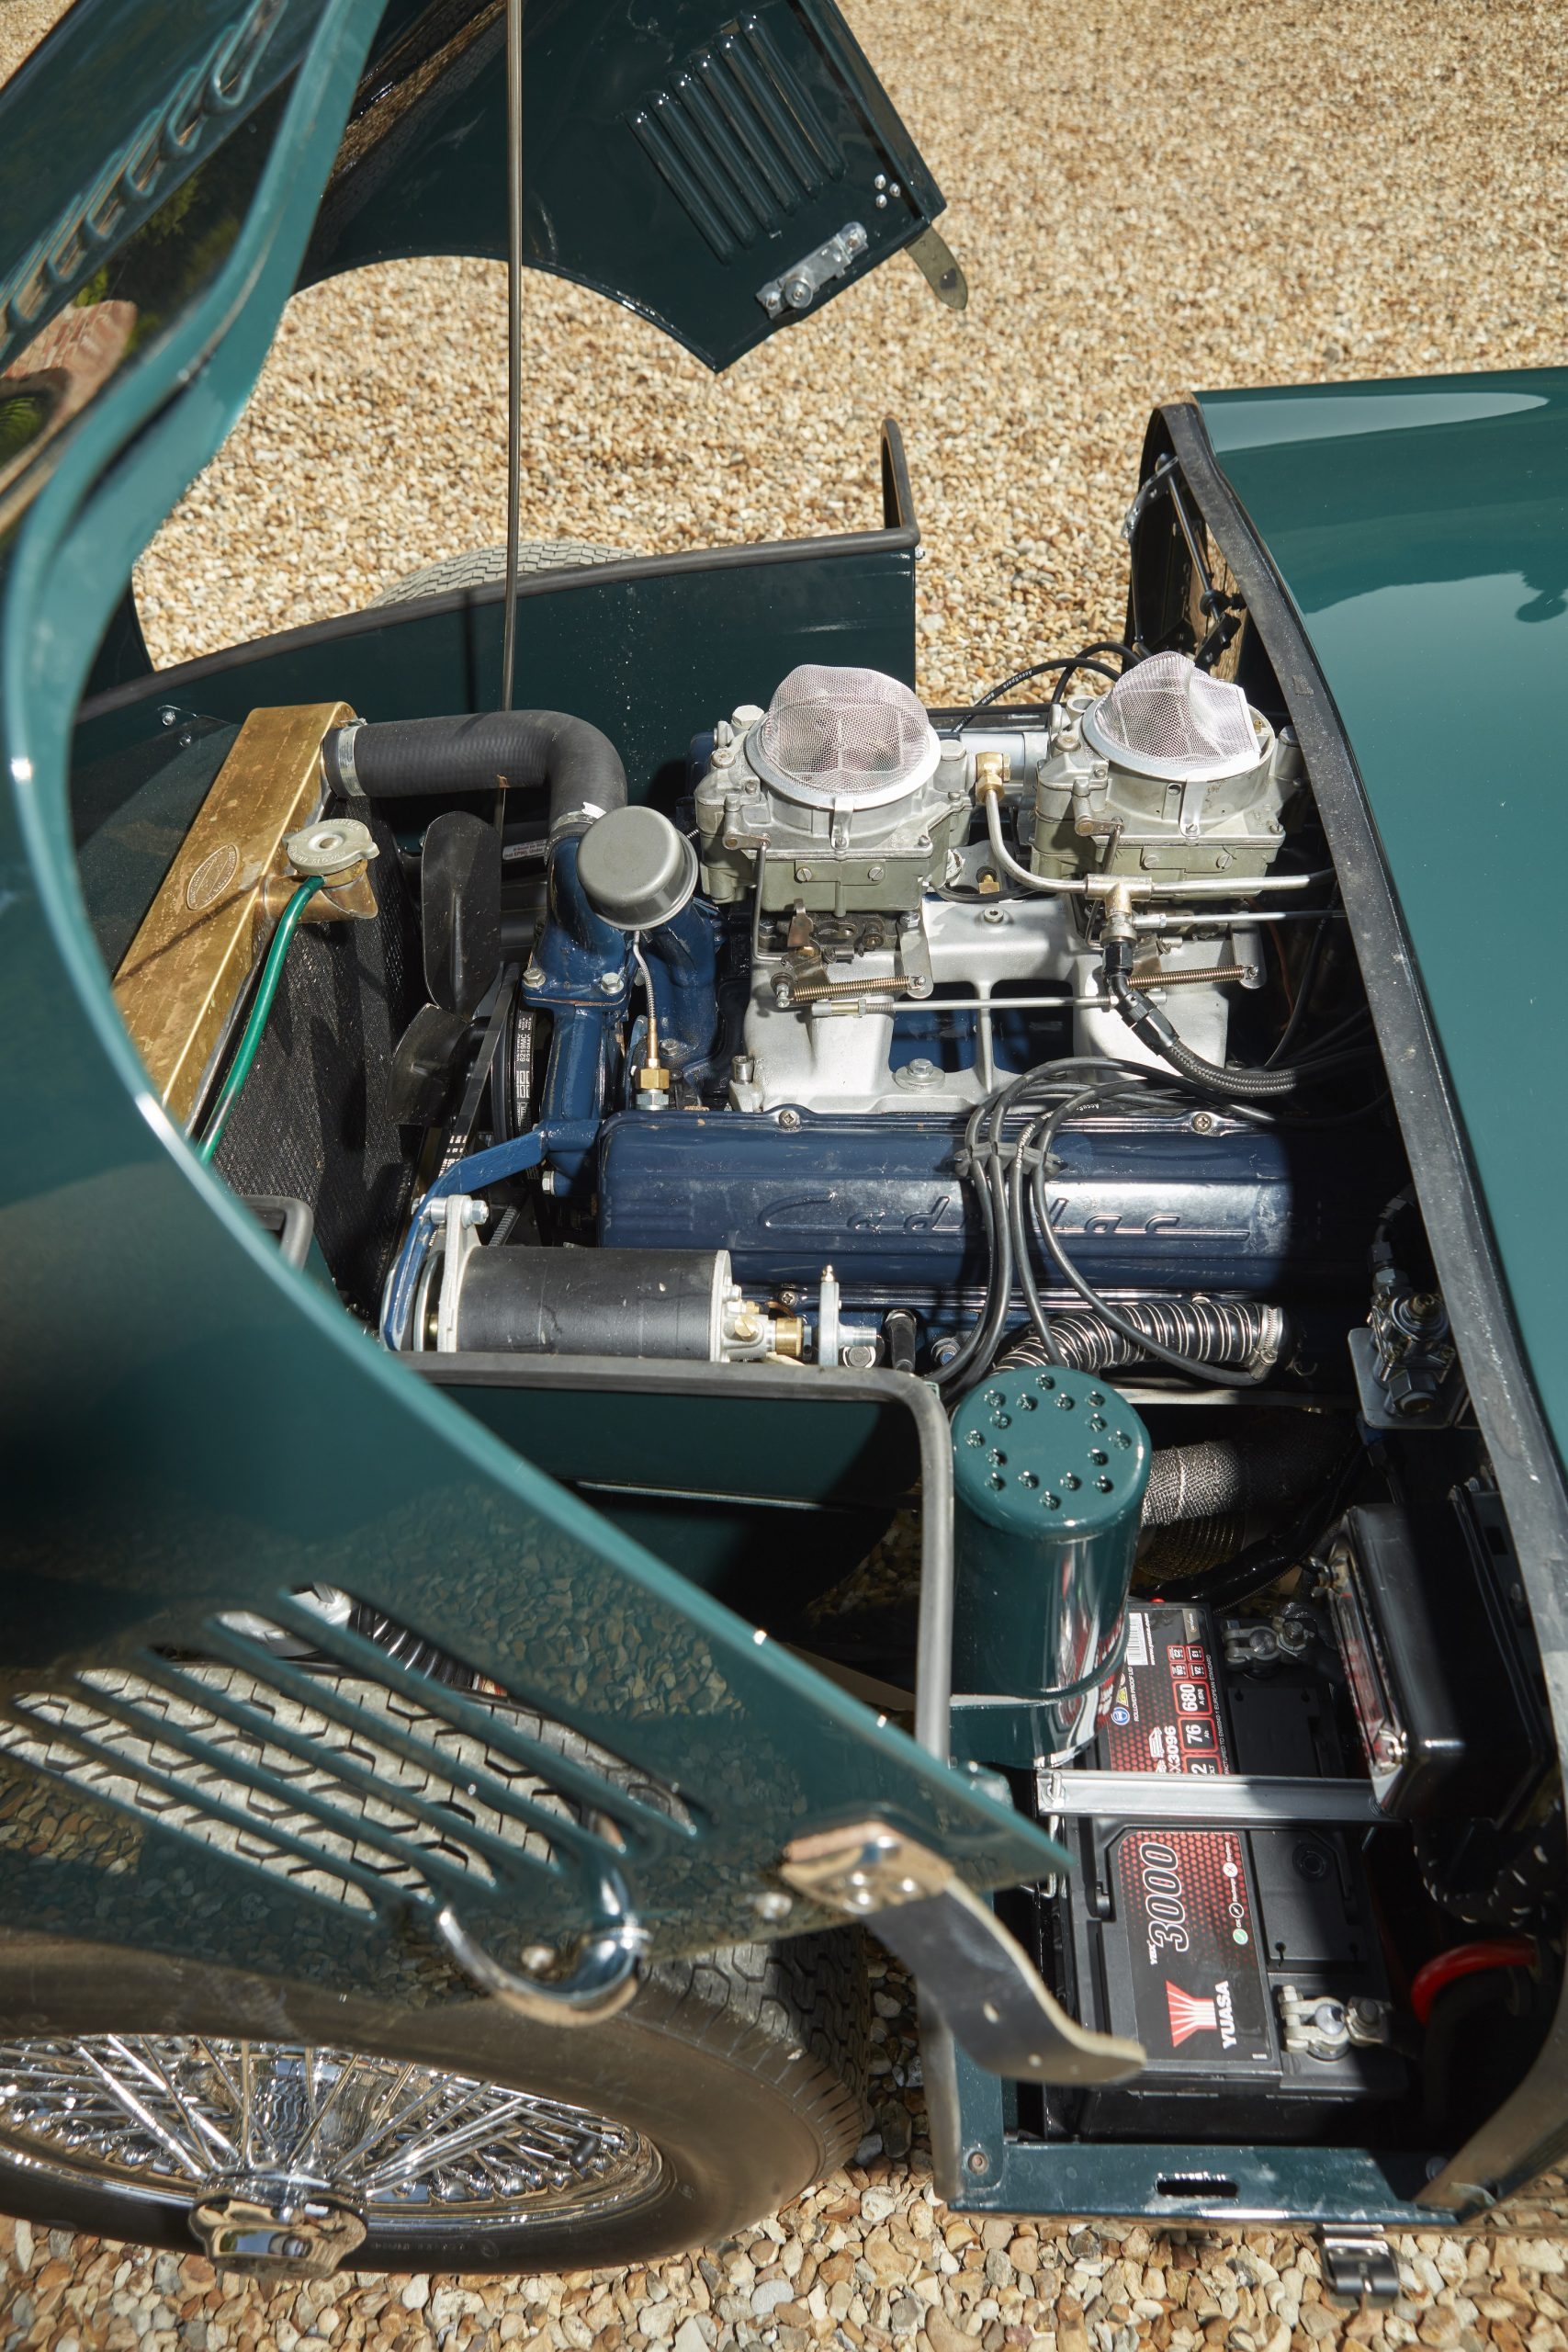 Allard JR continuation car engine vertical